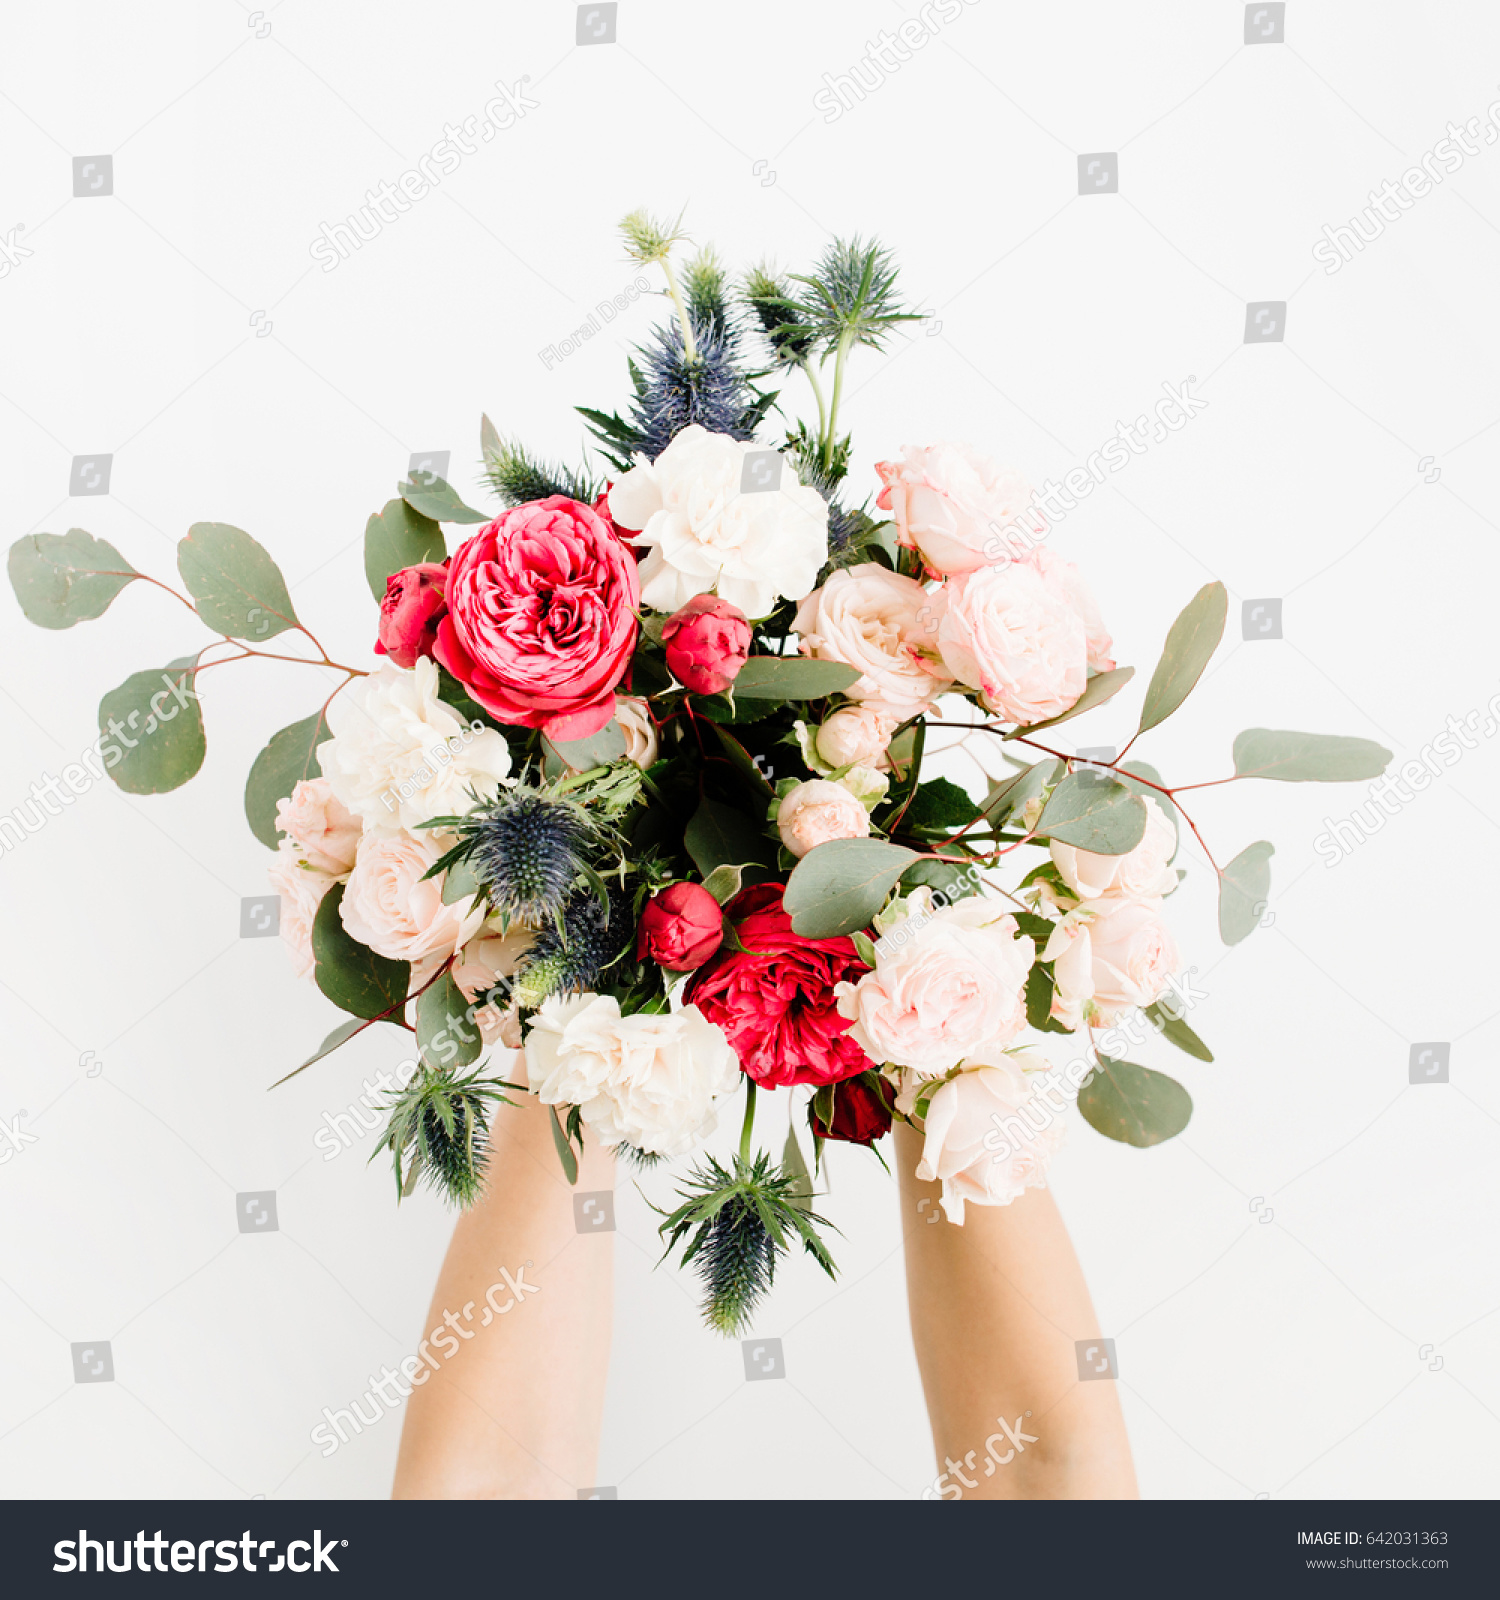 Girls Hands Holding Beautiful Flowers Bouquet Stock Photo (Edit Now ...